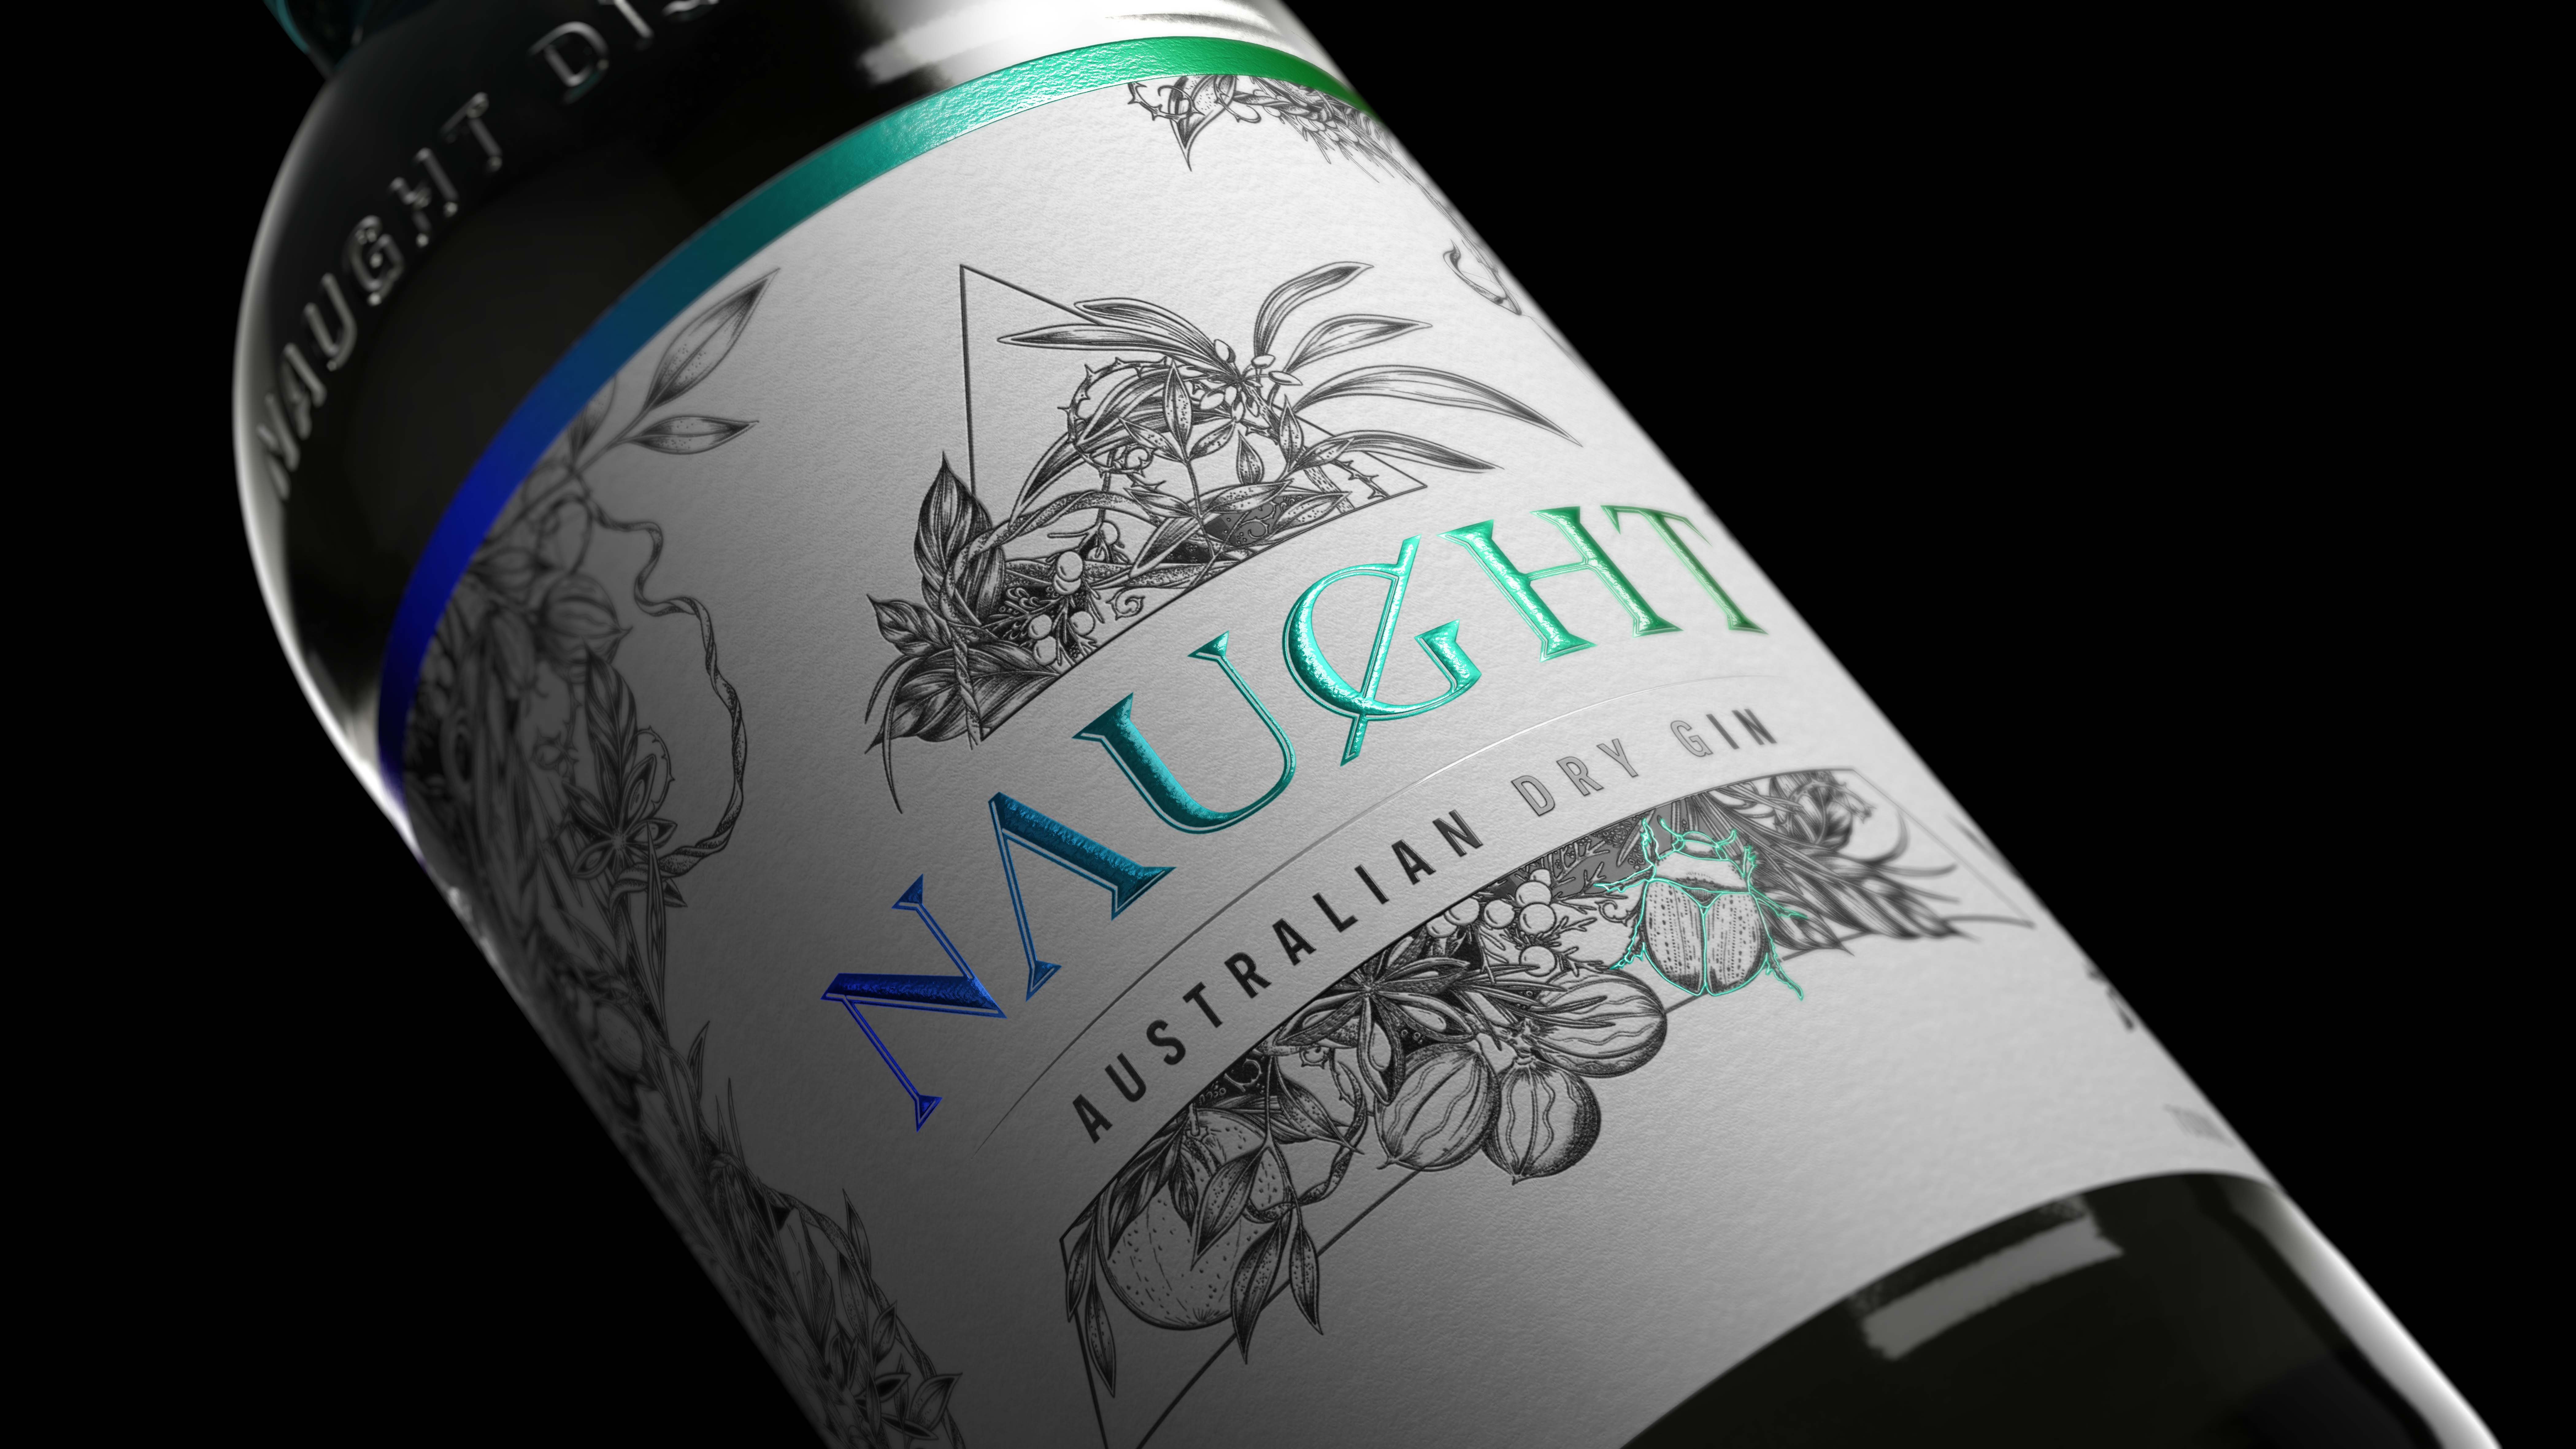 Naught – An All New Australian Dry Gin Designed by Carrousel